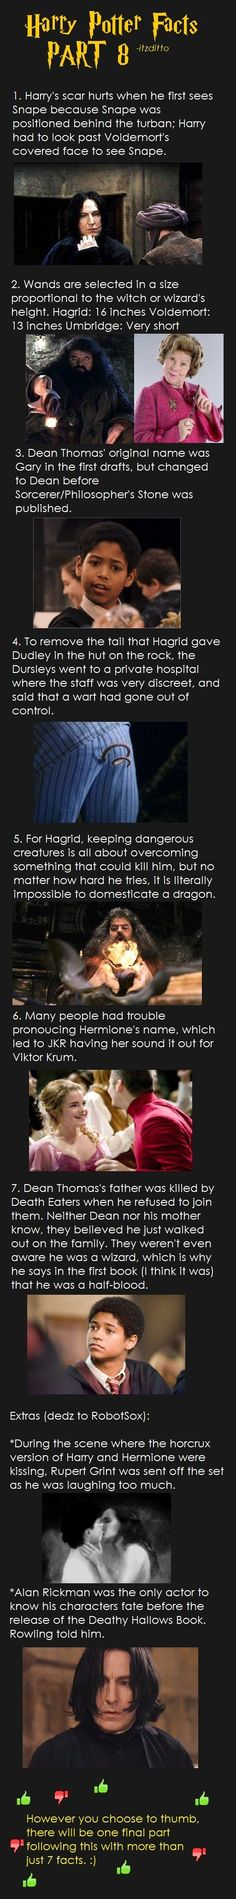 More Pictures On The Blog! Harry Potter Facts Part 8